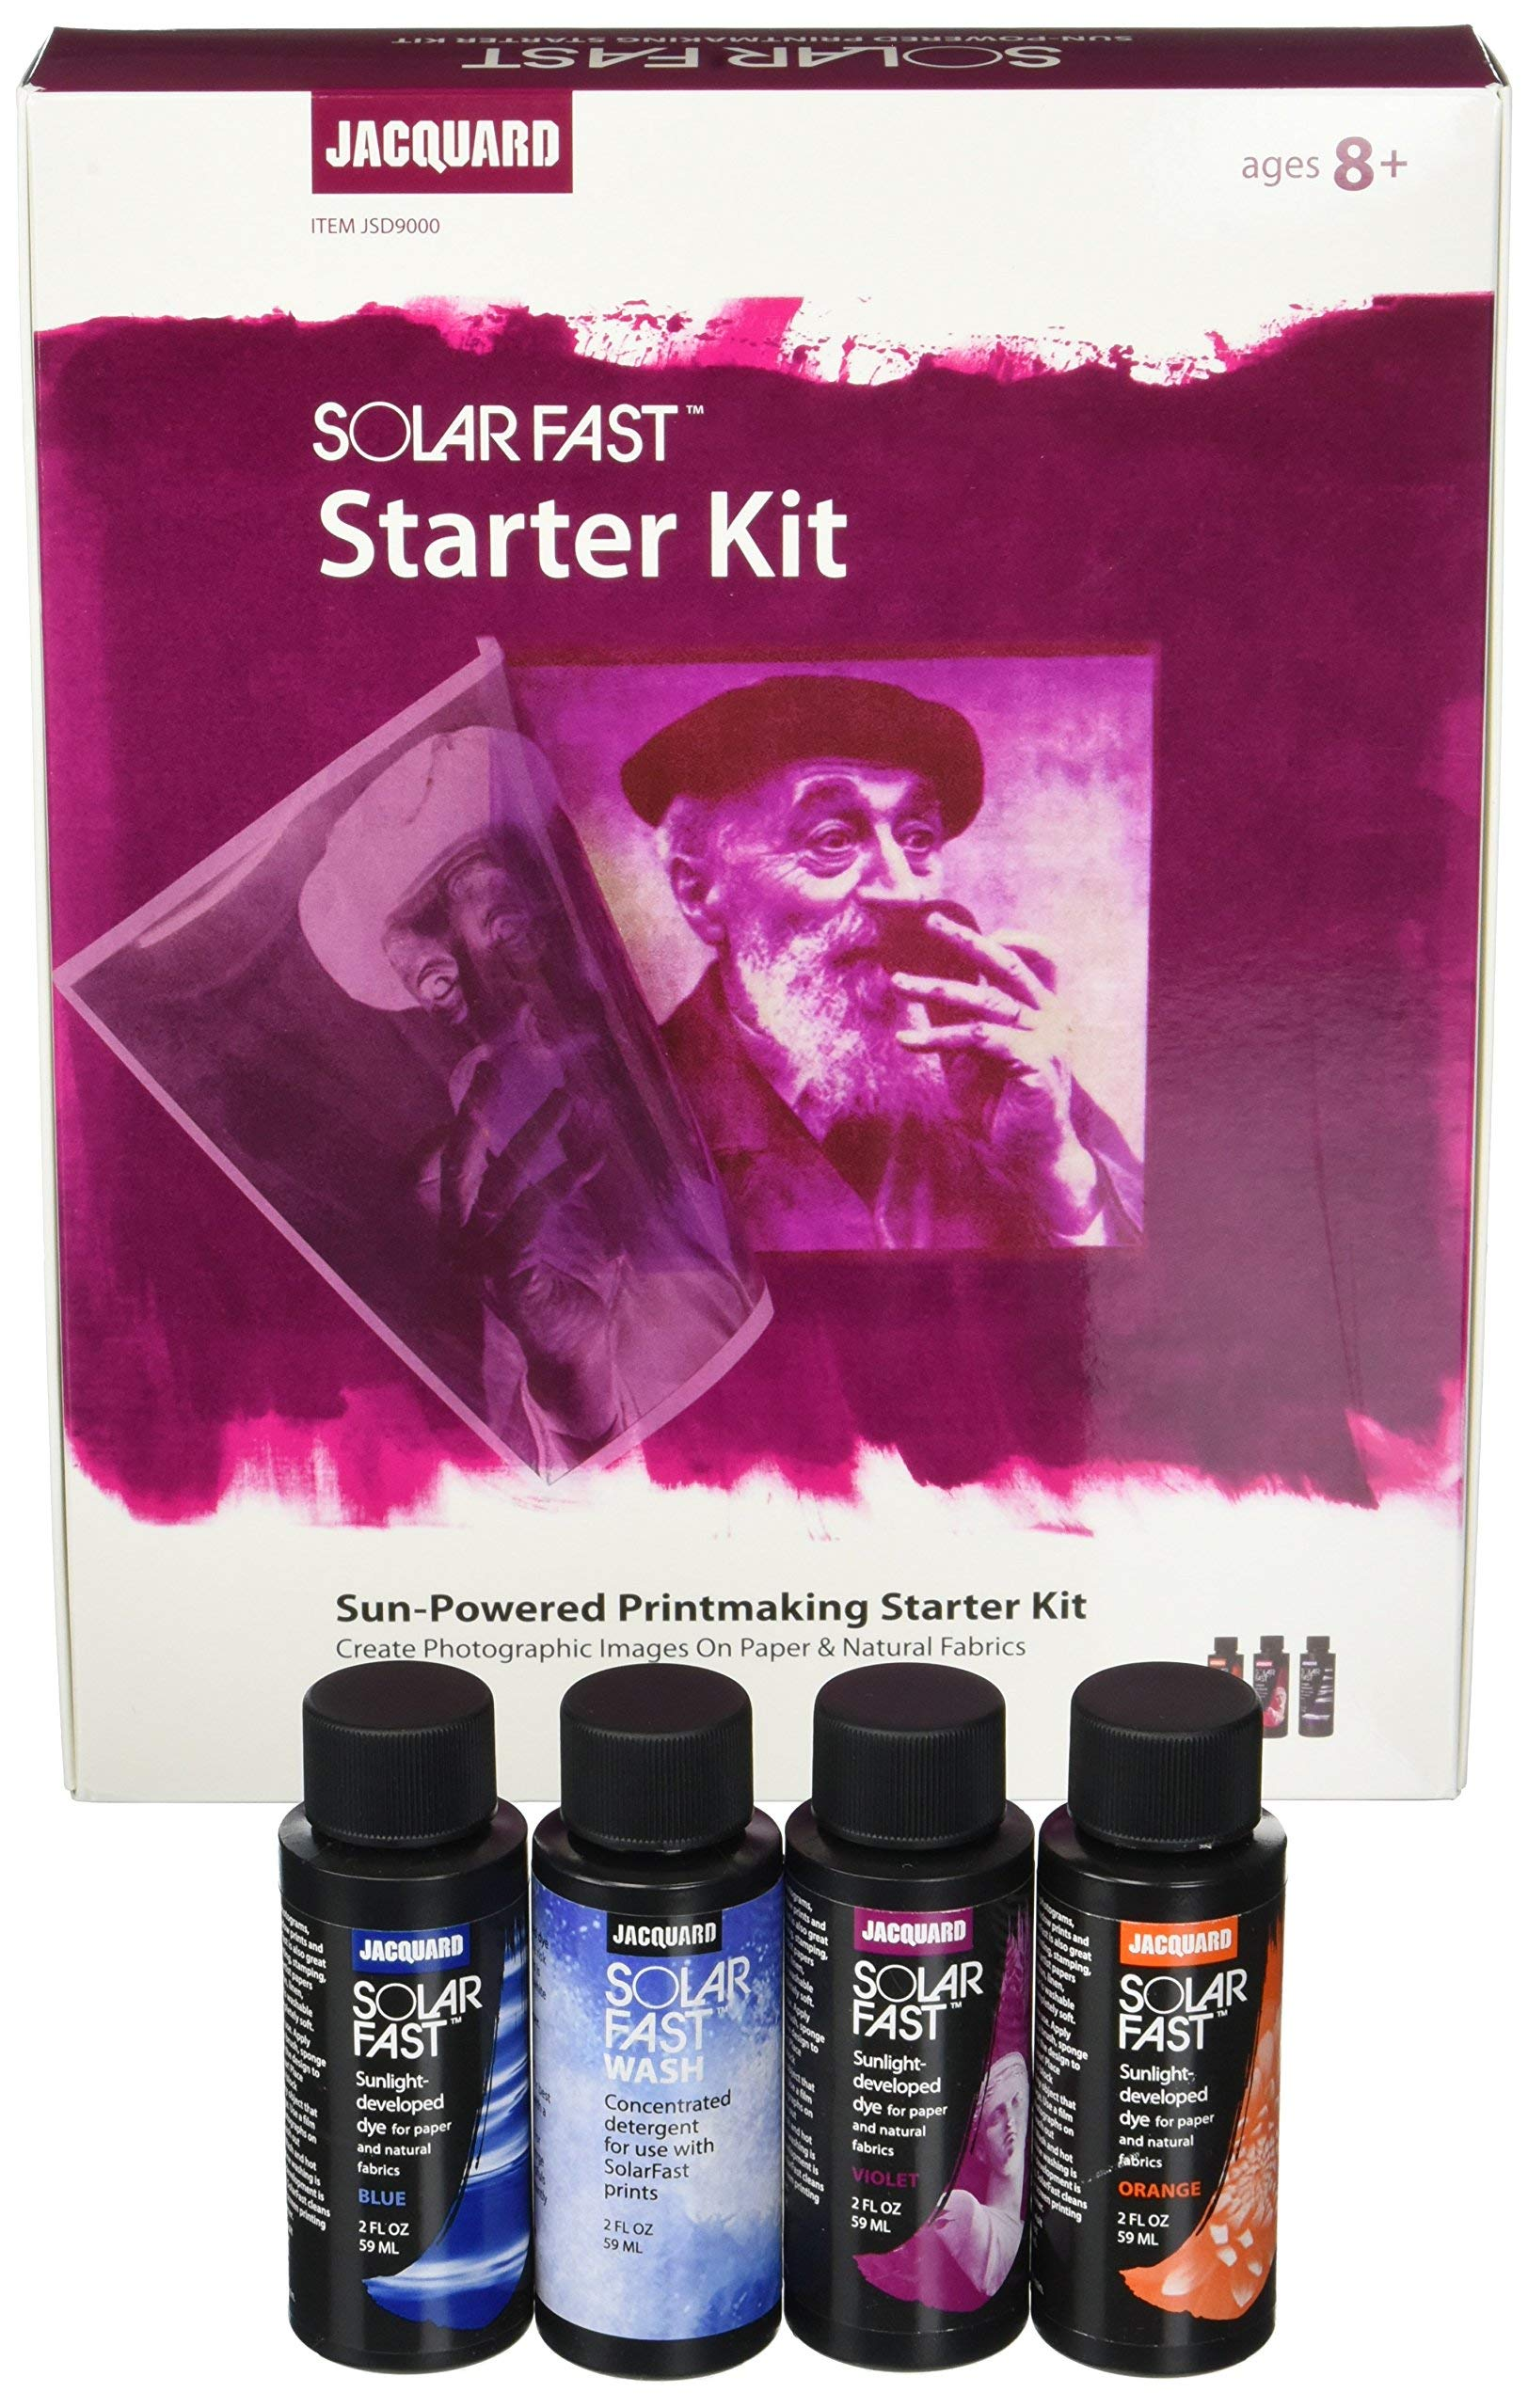 Jacquard JAC-JSD9000 Solar Fast Sun Powered Printmaking Starter Kit